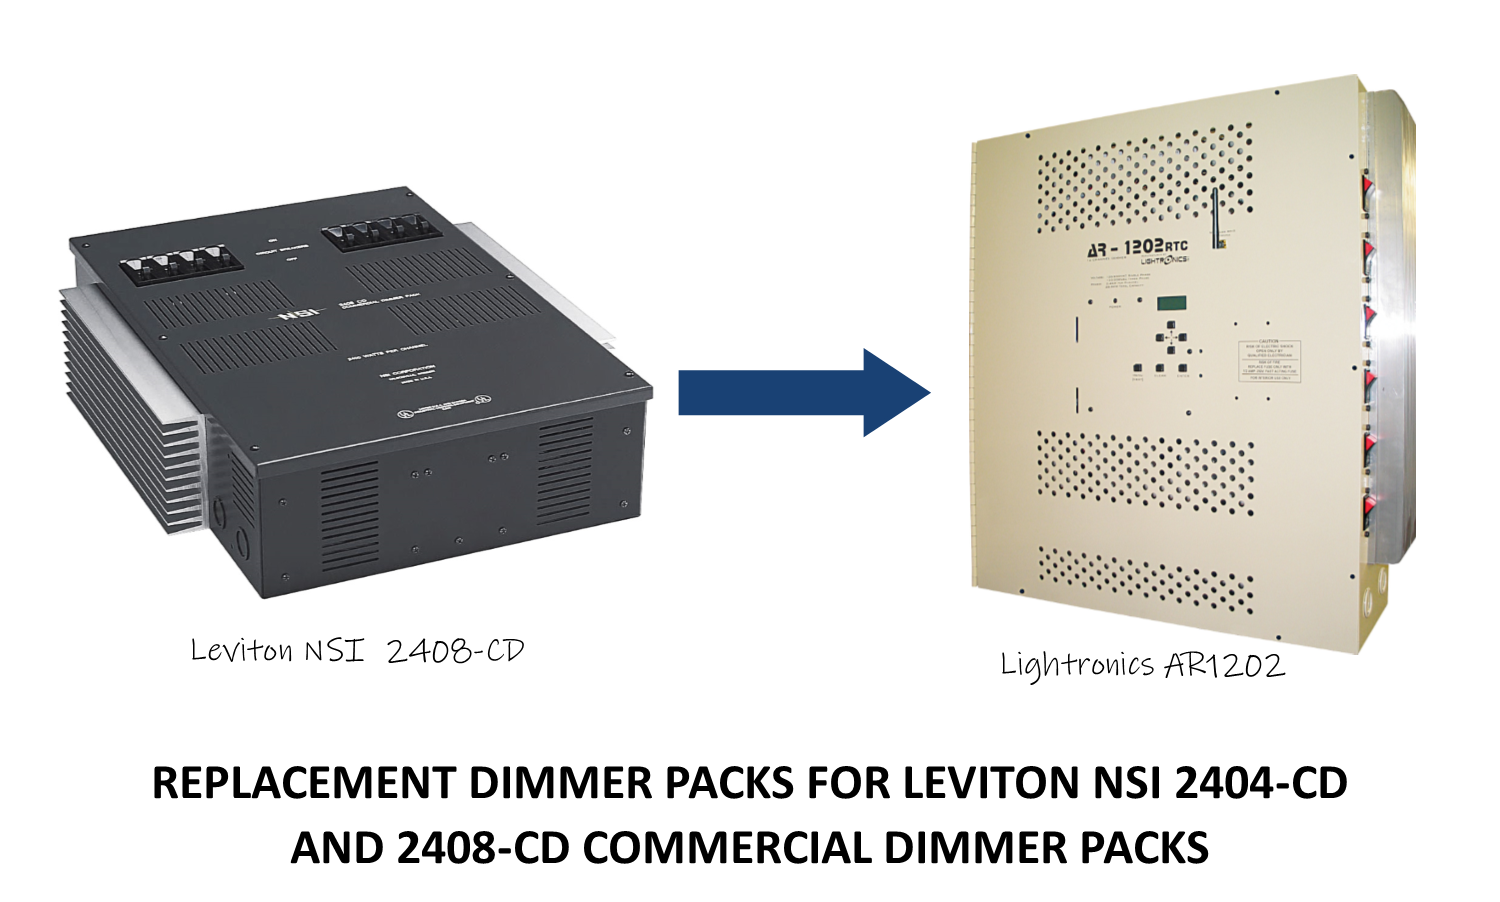 REPLACEMENT DIMMER PACKS FOR LEVITON NSI 2404-CD AND 2408-CD COMMERCIAL DIMMER PACKS